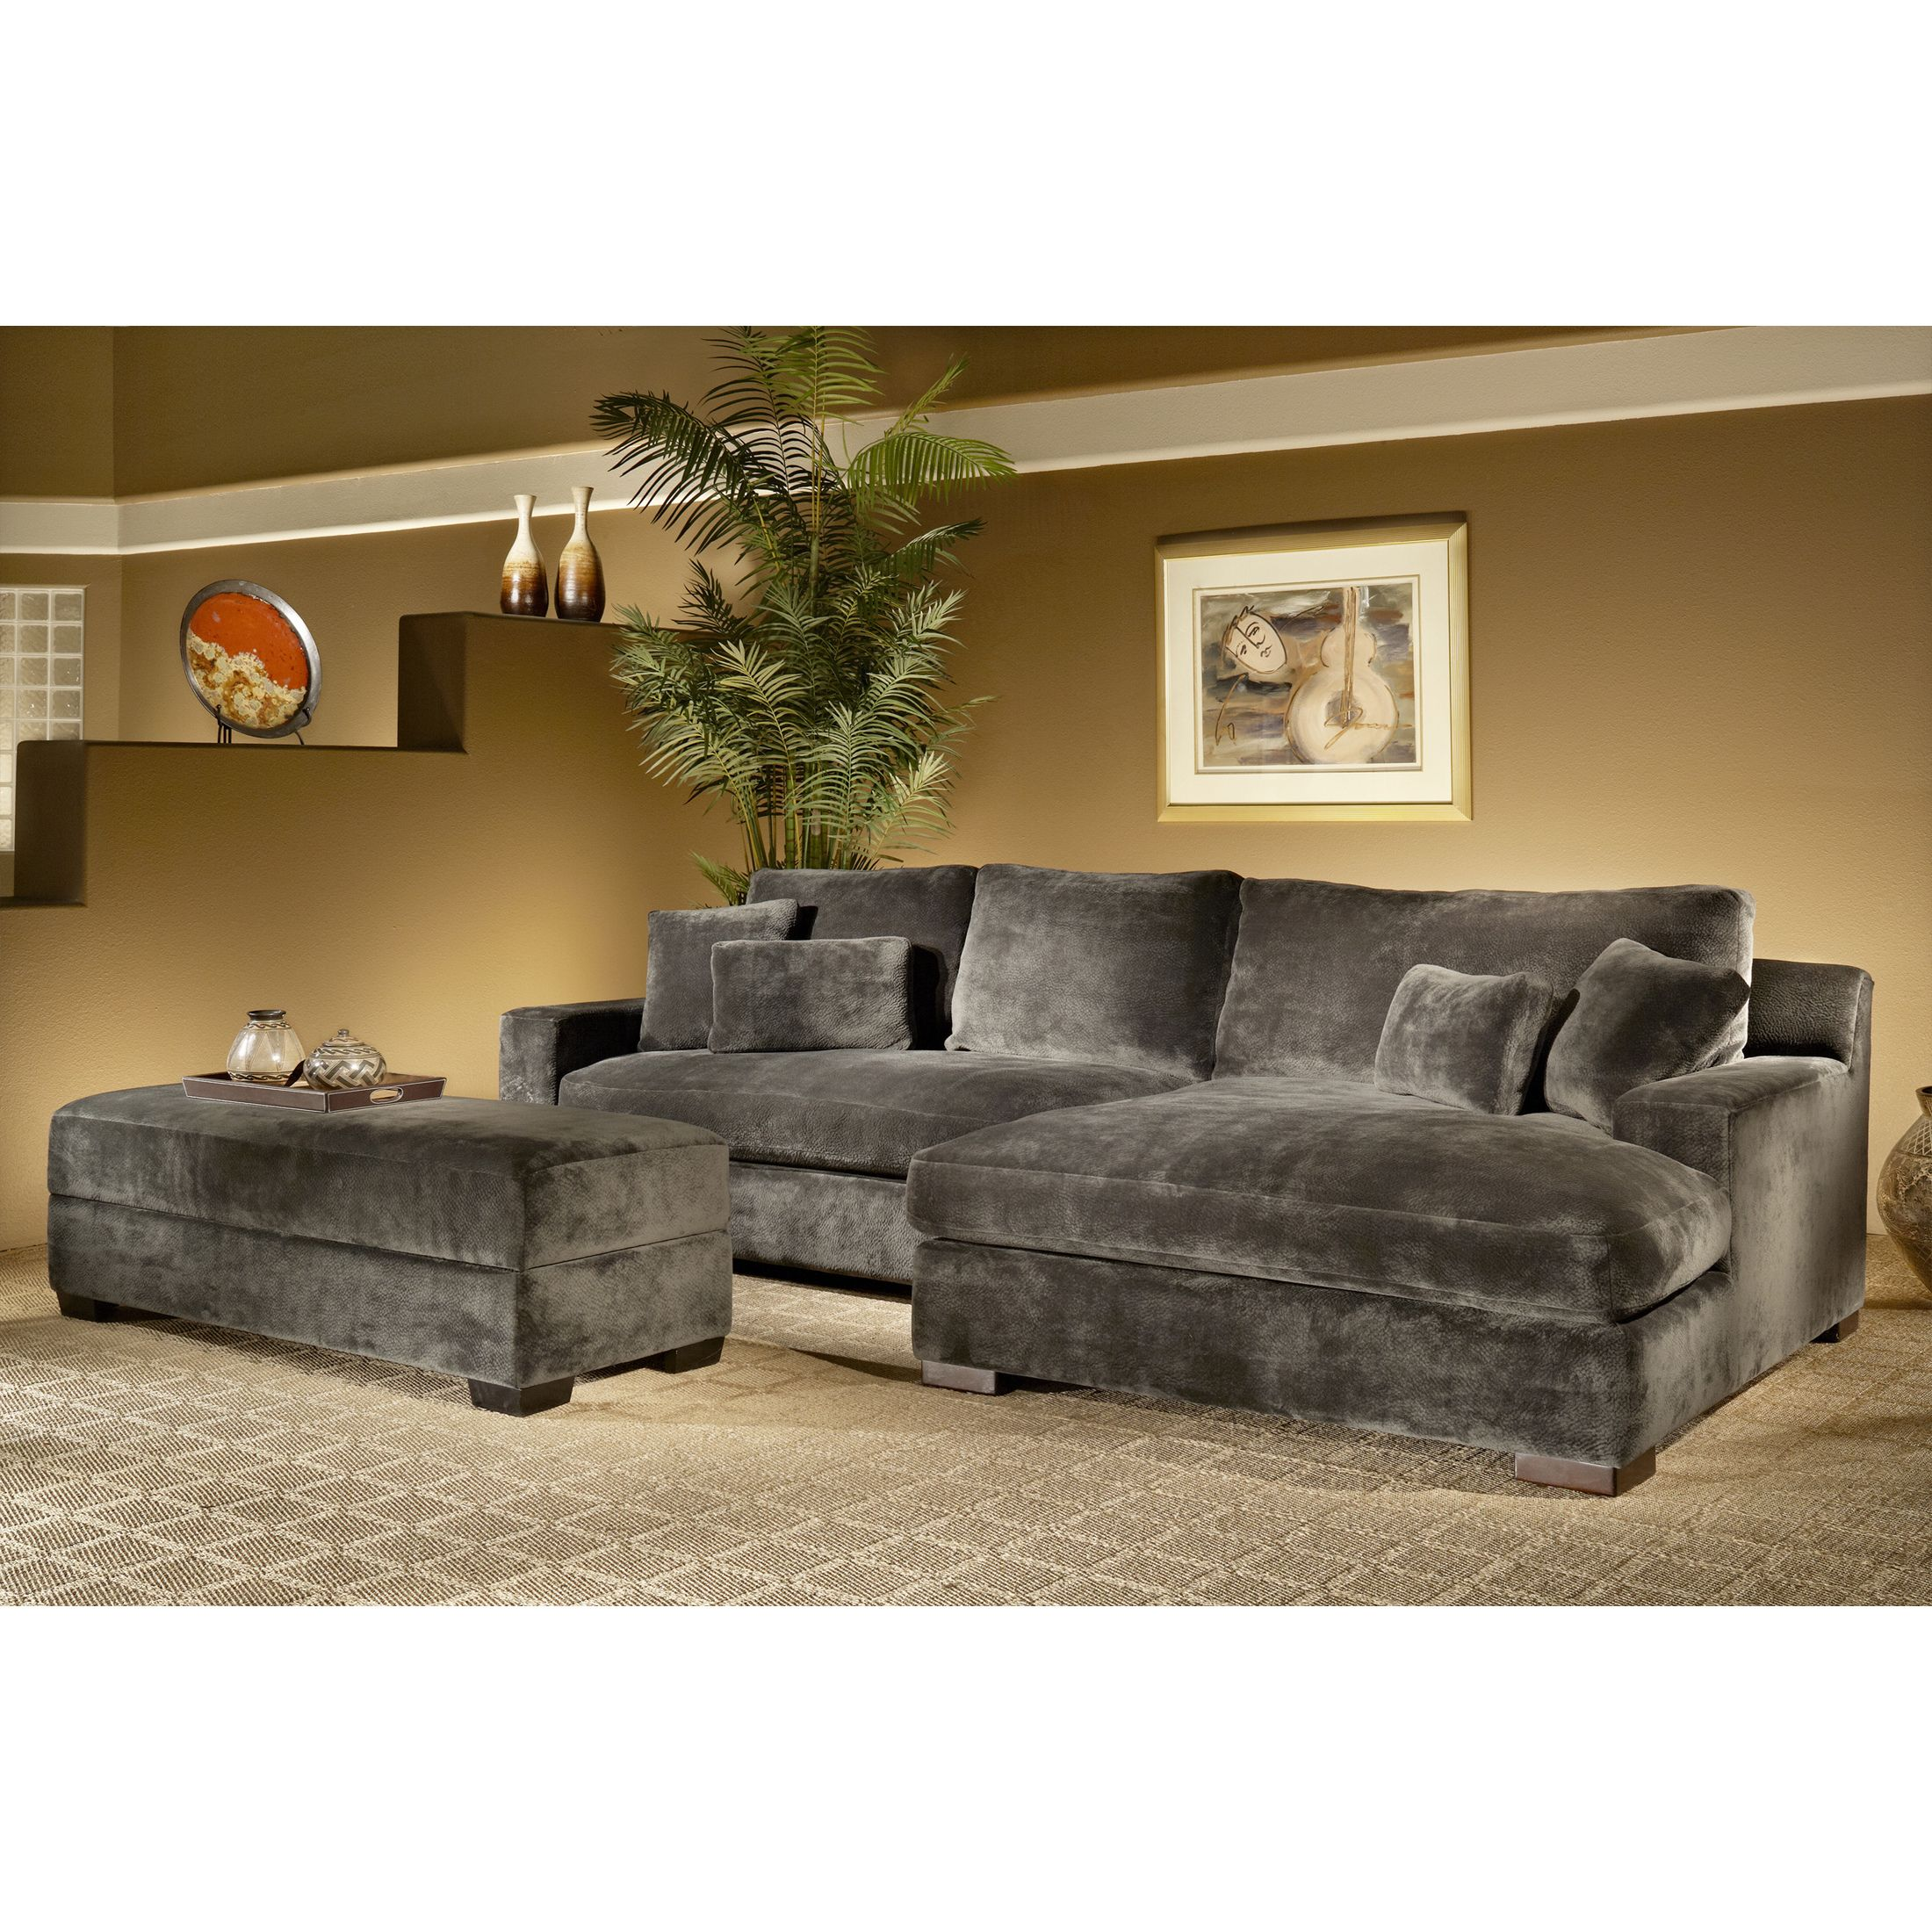 with chaise picture hereo sofa inspirations velvet sectional staggering tx velour in financing blue austin sofas